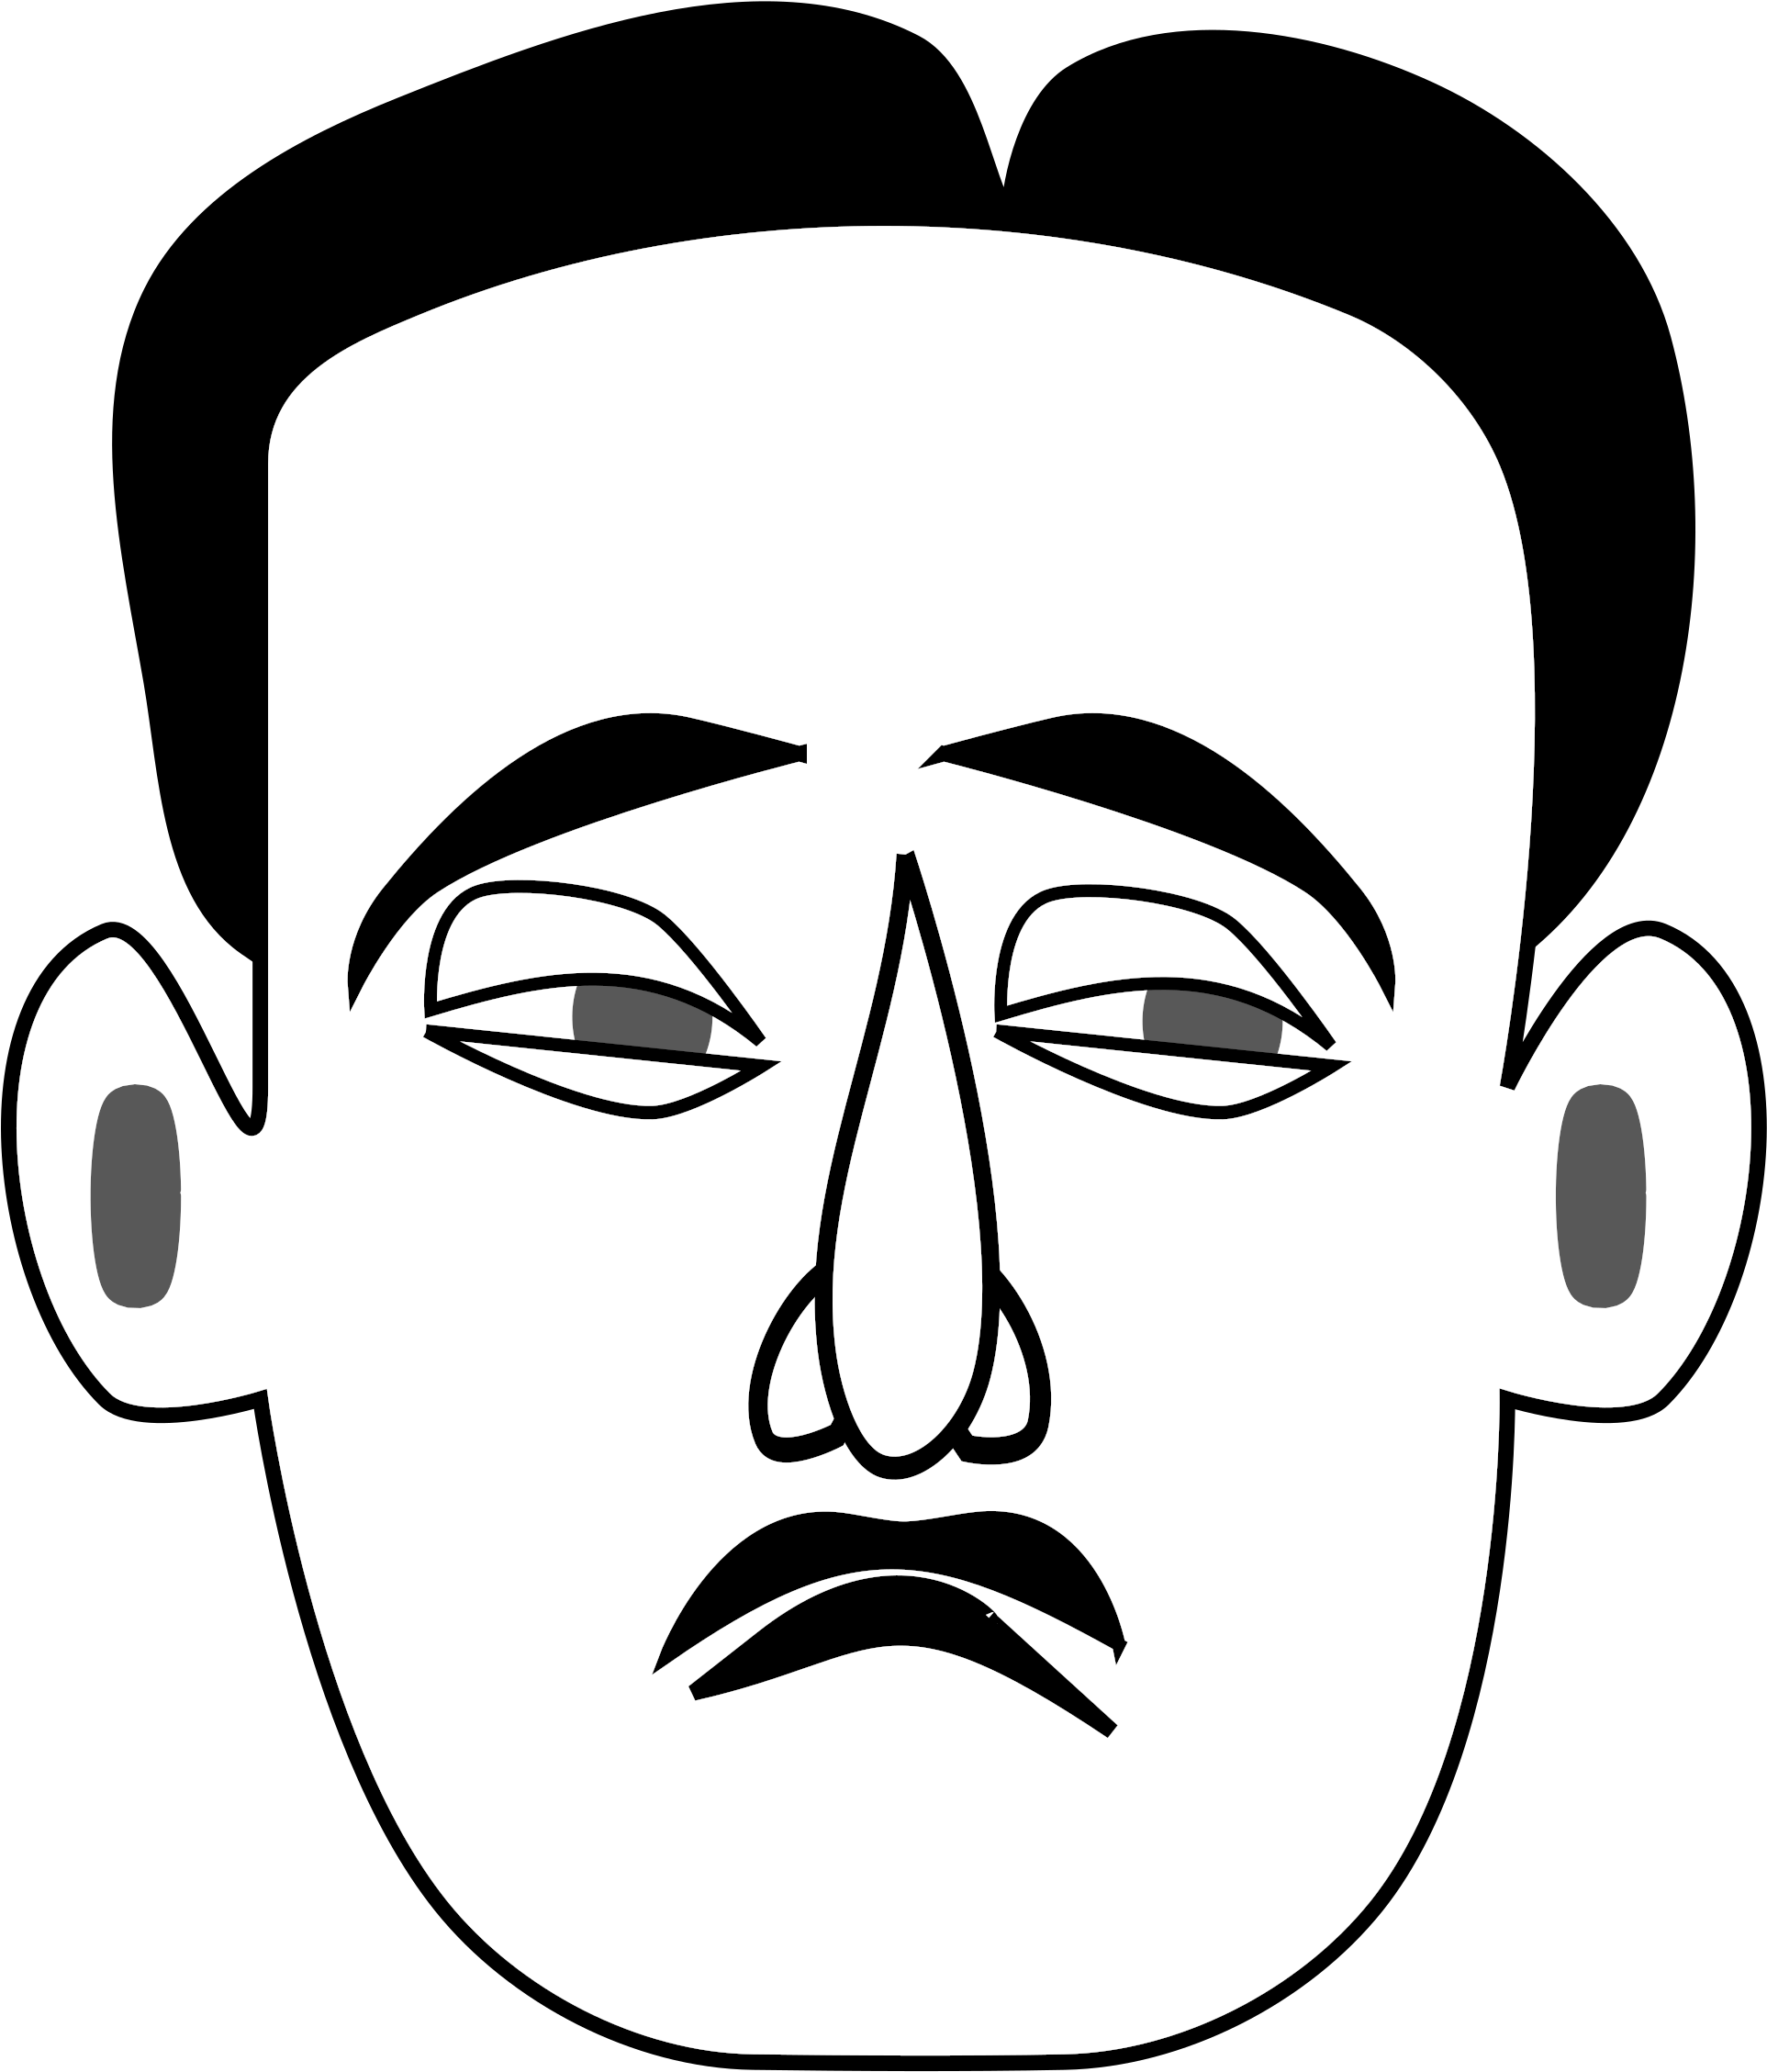 Sad man face clipart picture library stock Sad Face Clip Art Black And White - Sad Man Face Clipart ... picture library stock